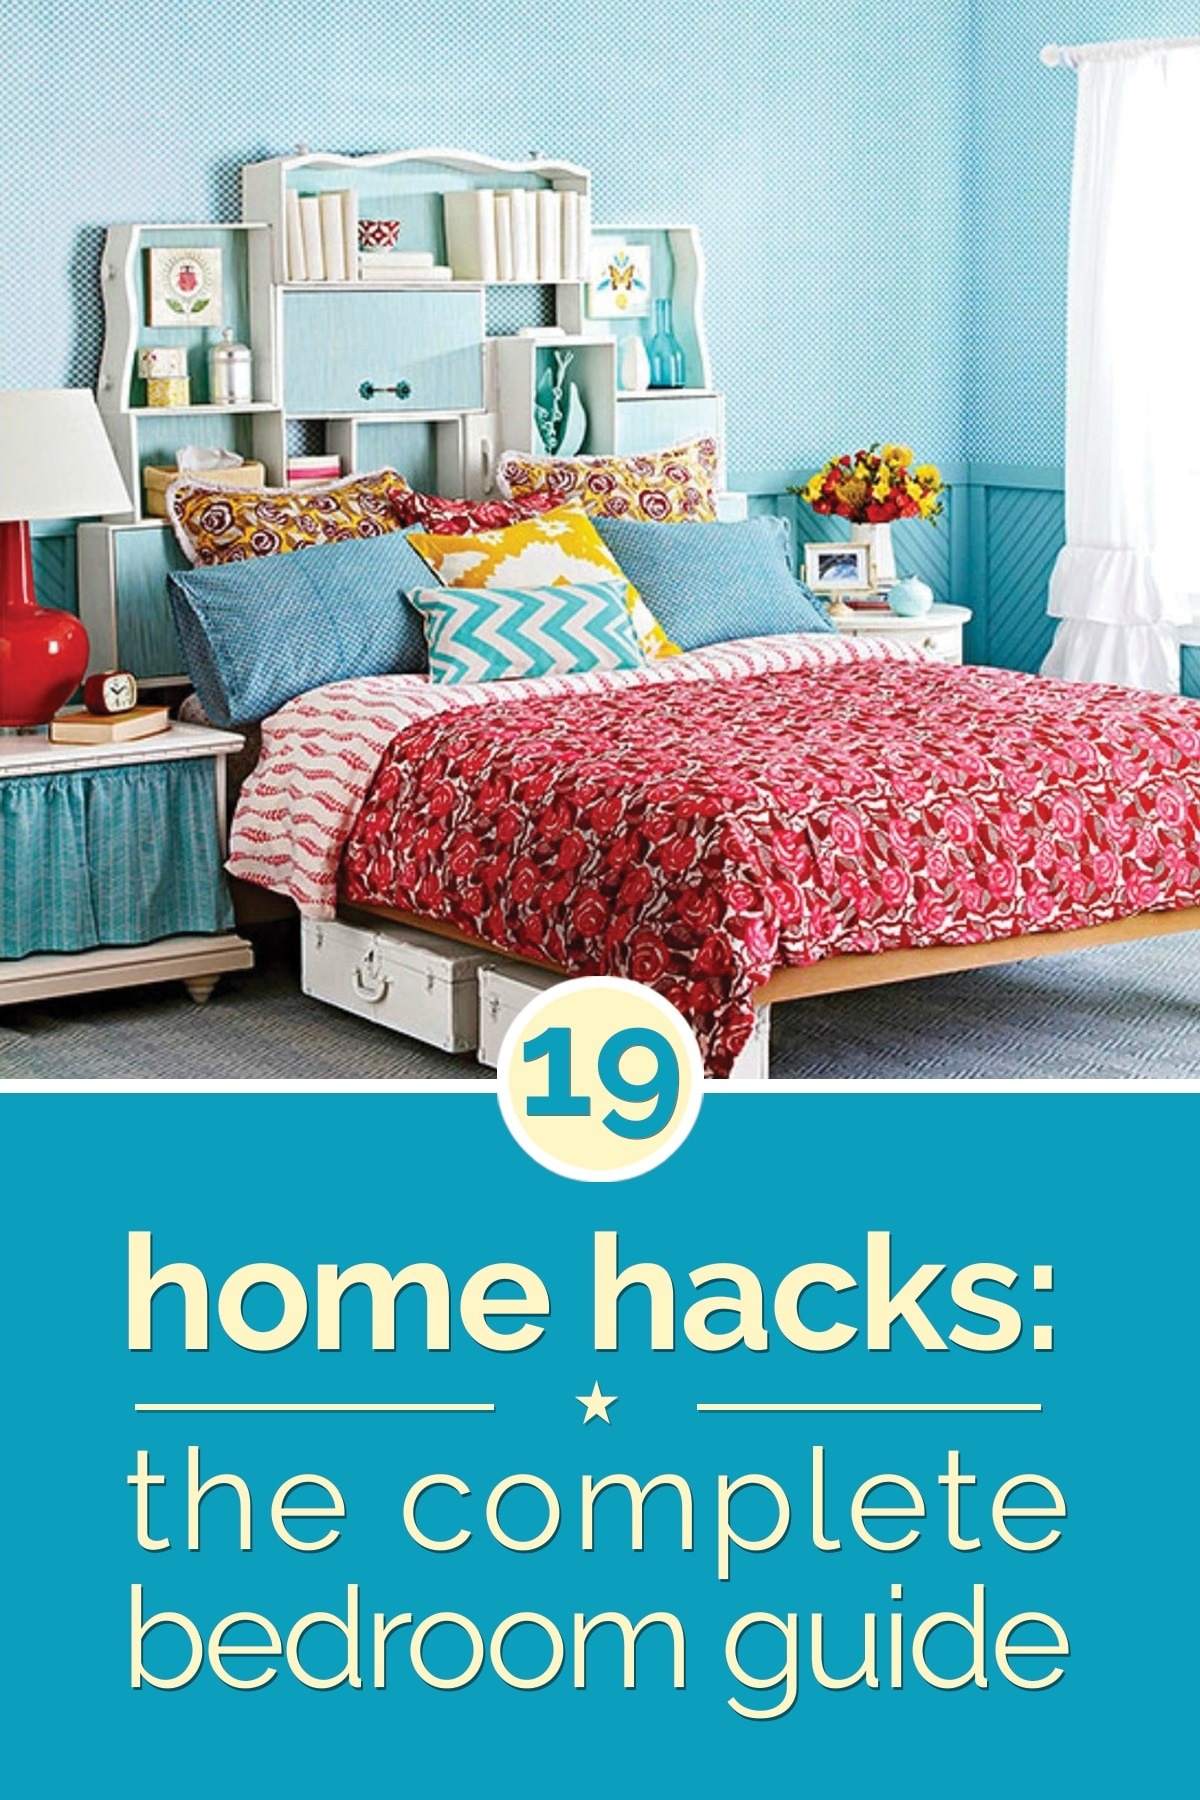 Home Hacks: 19 Tips to Organize Your Bedroom - thegoodstuff